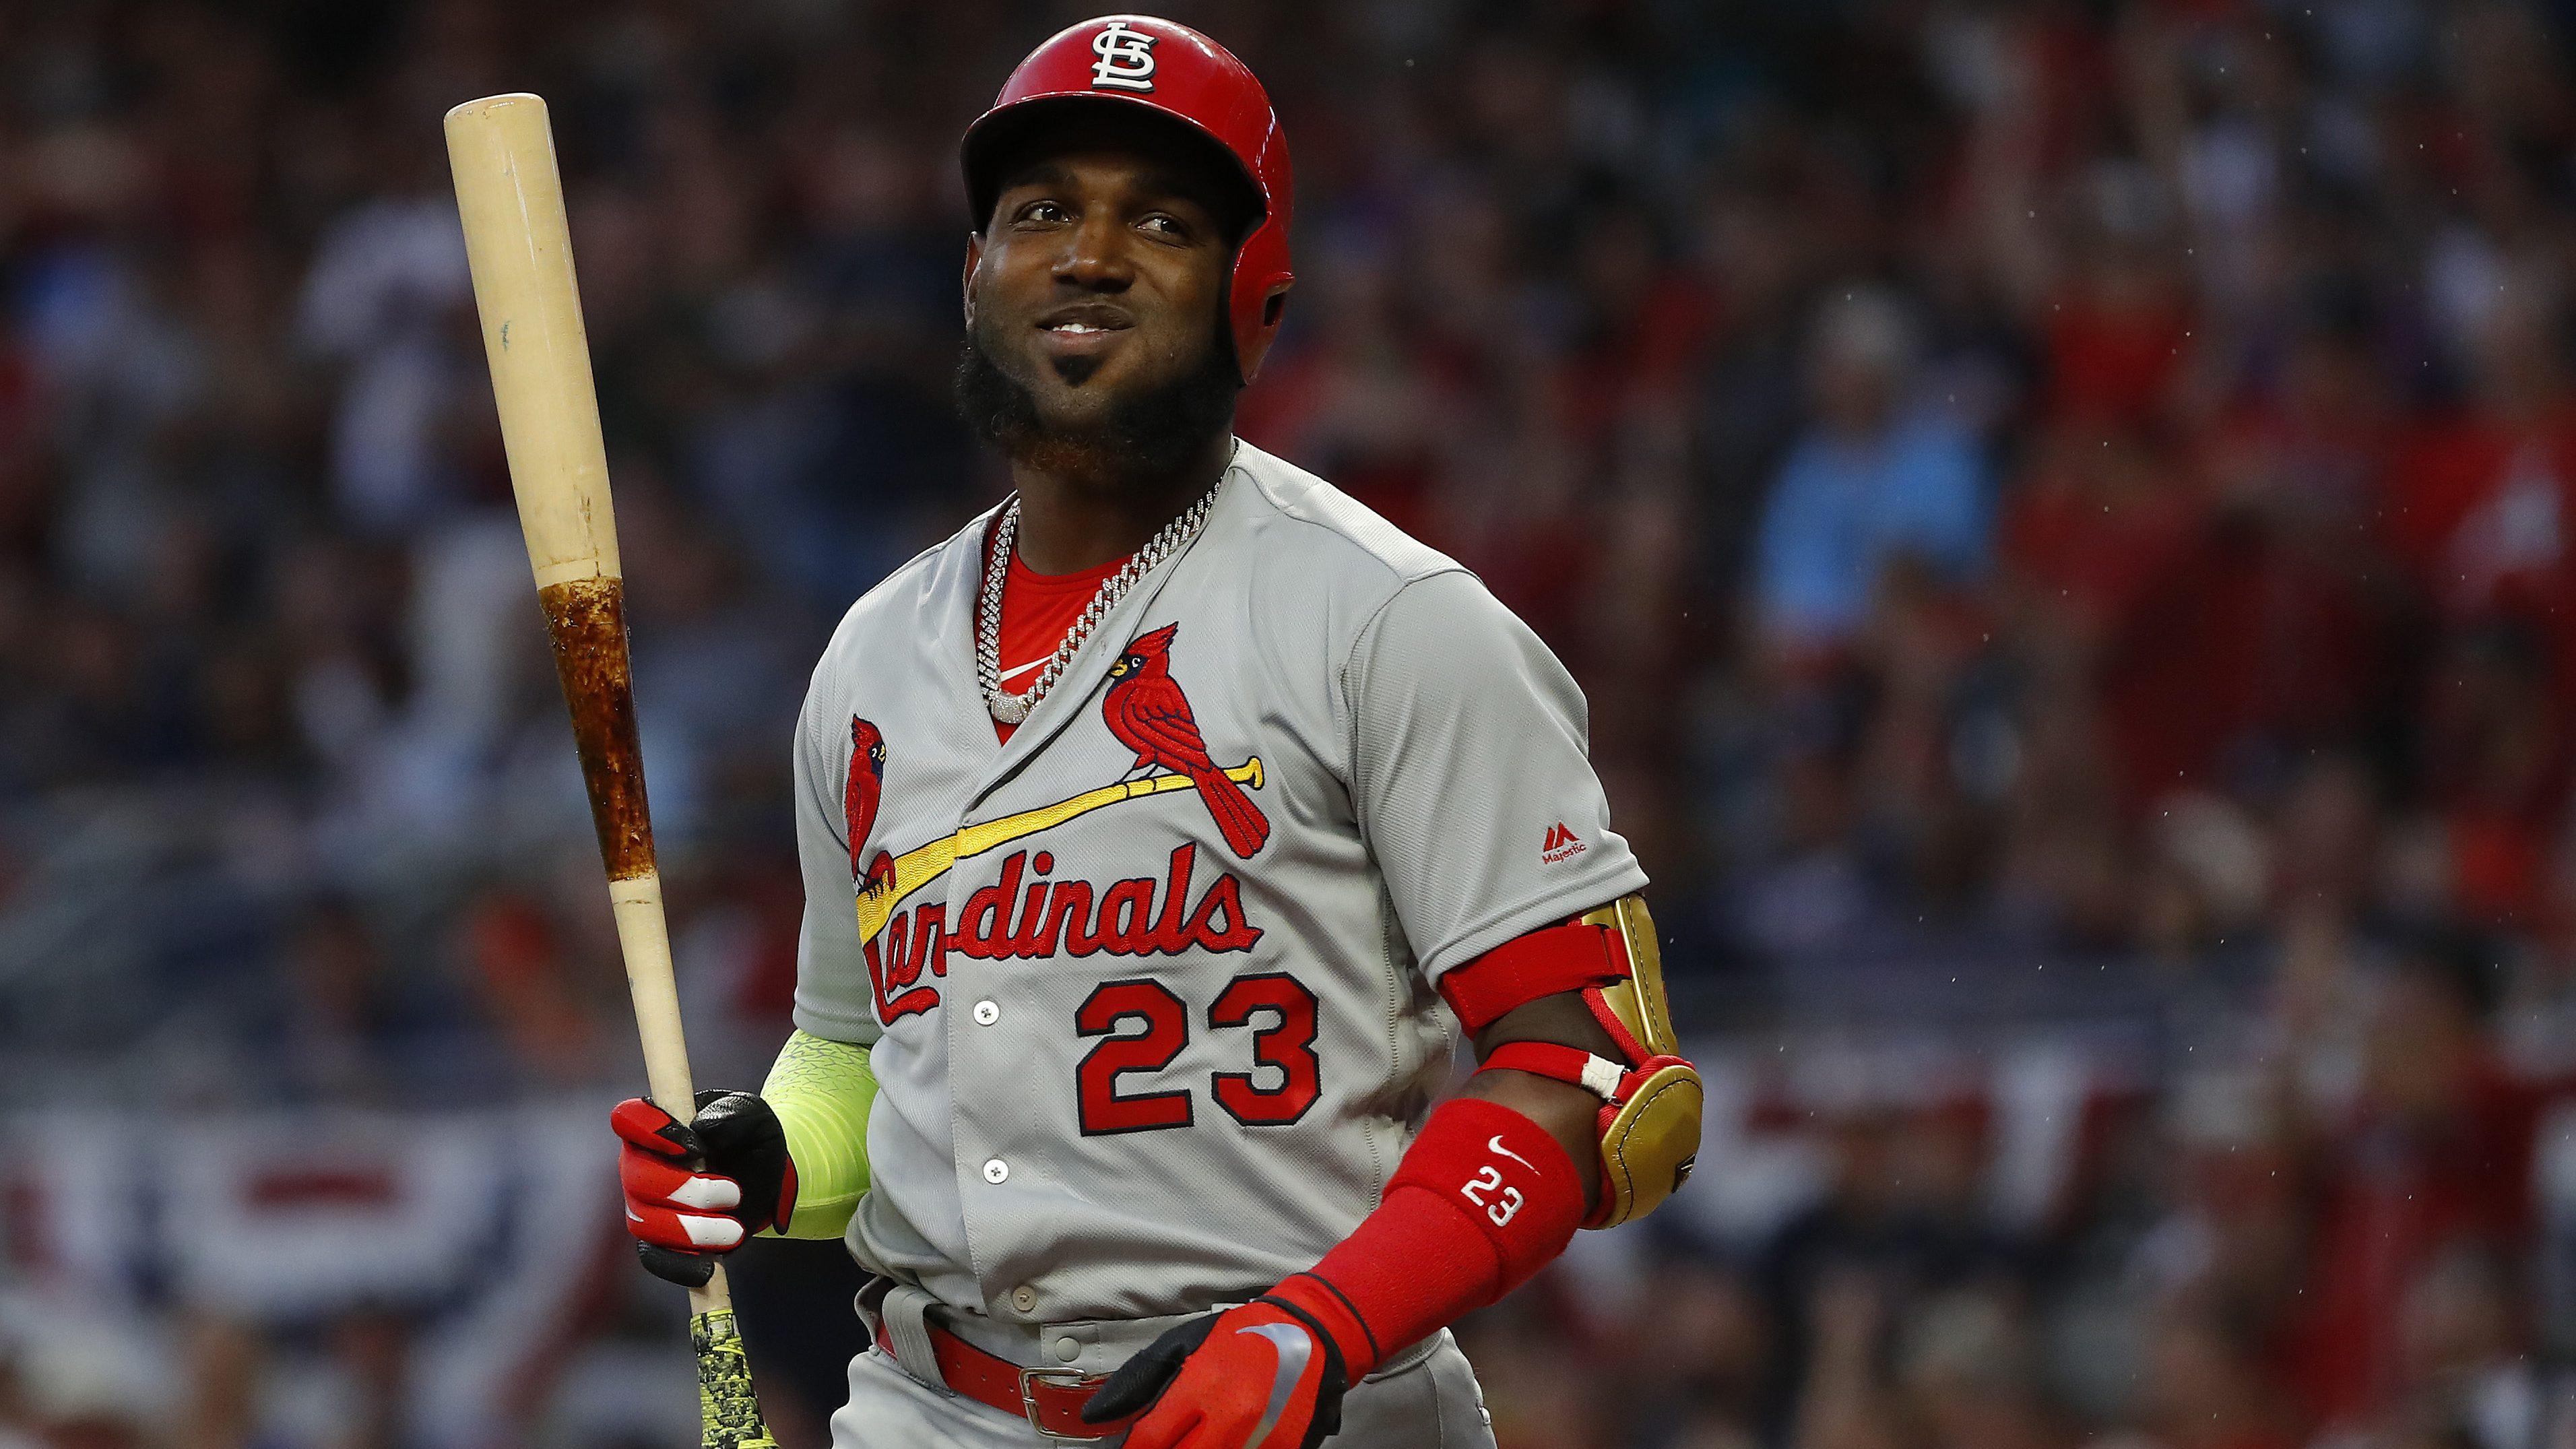 Braves sign Marcell Ozuna to one-year, $18 million deal